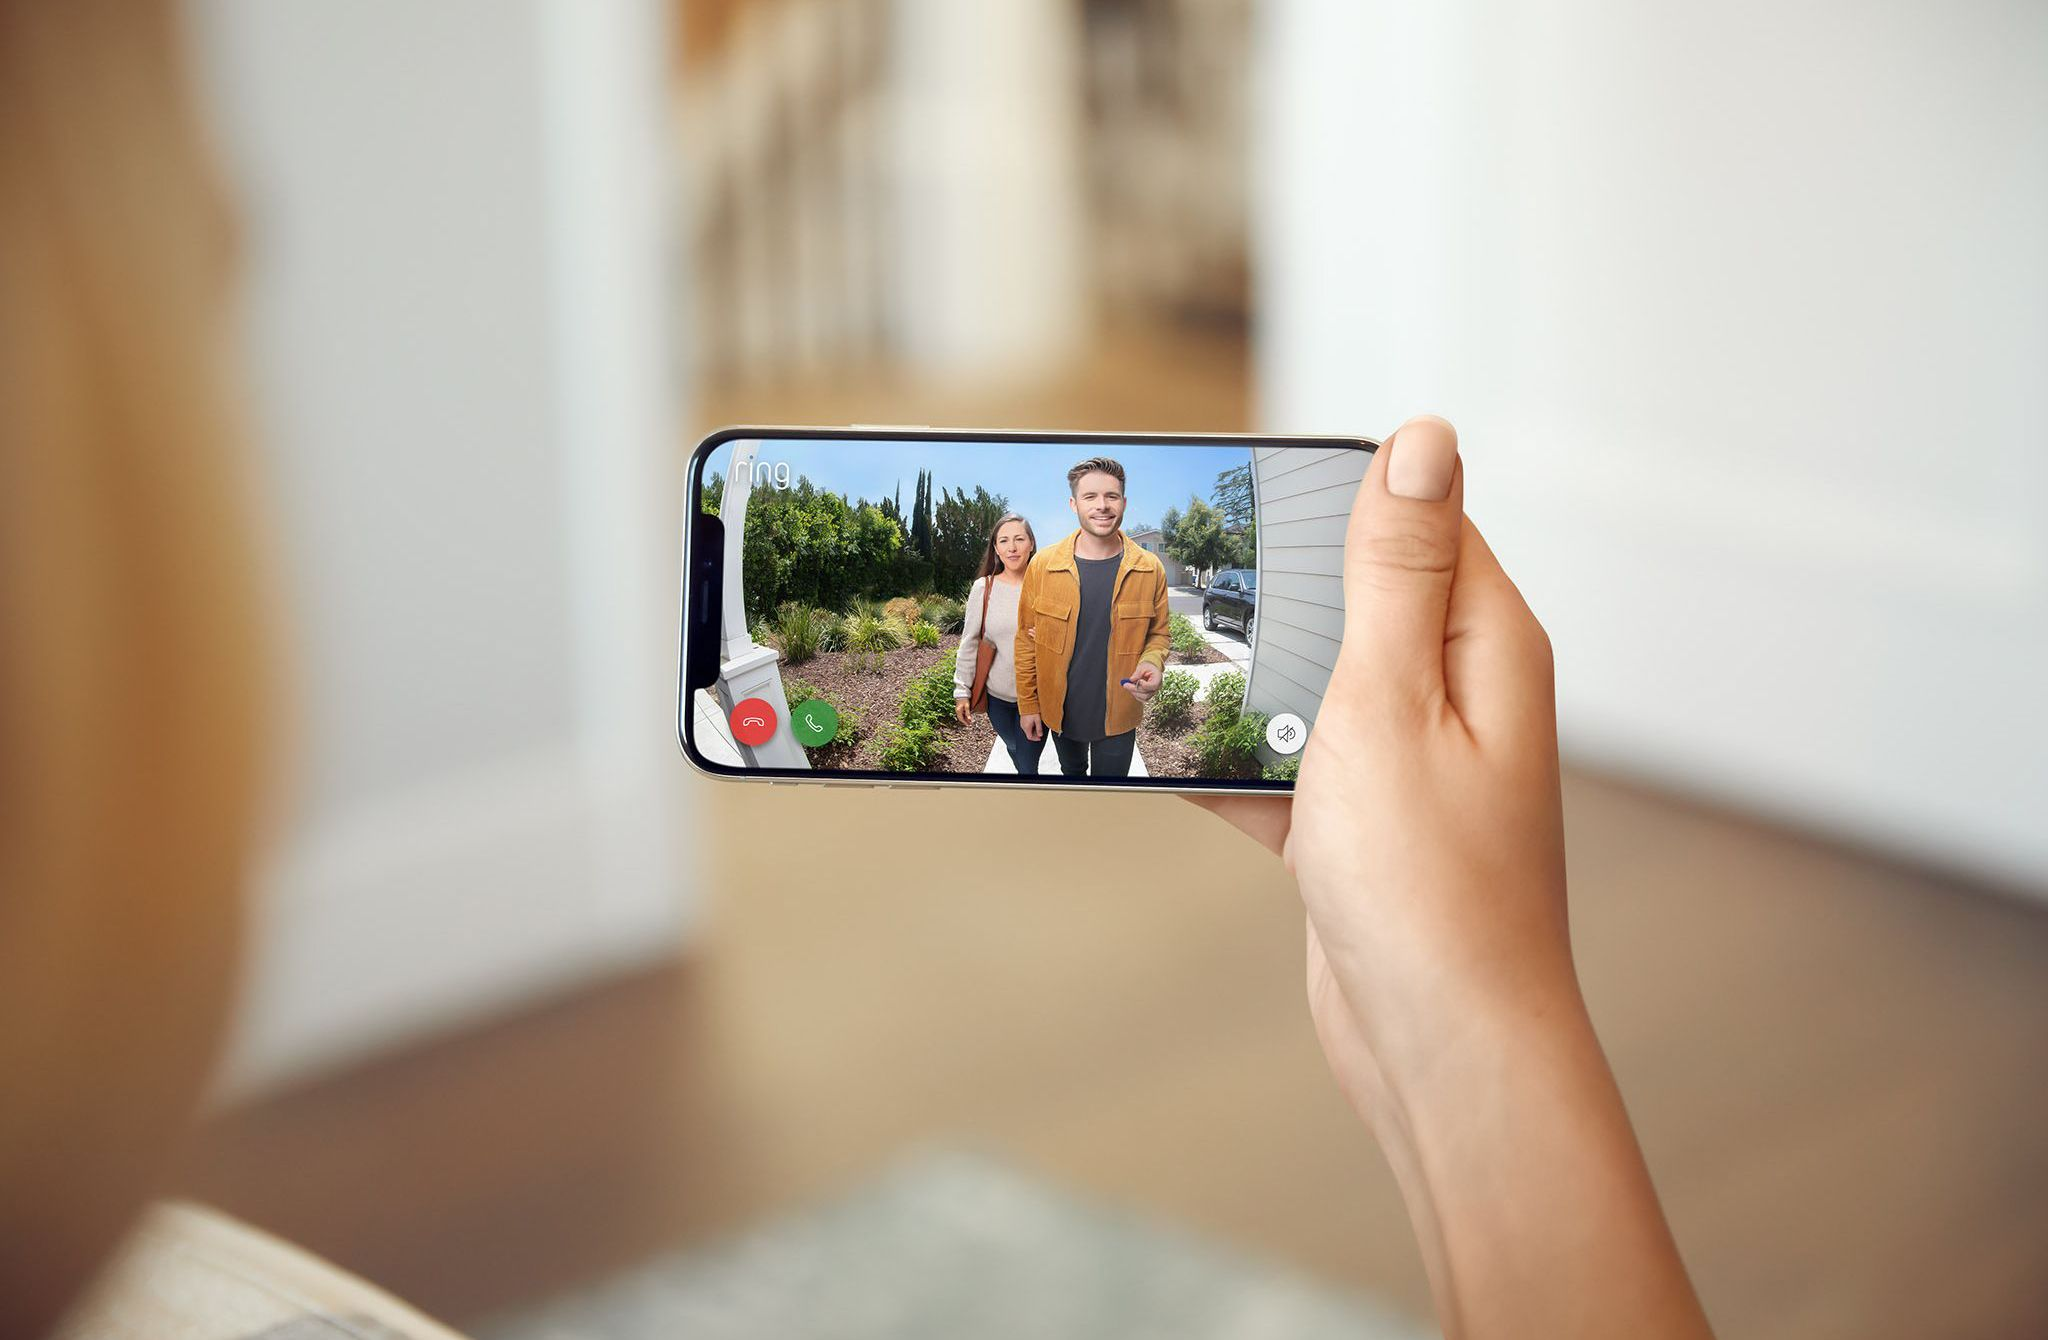 A person watching others using the Ring doorbell app on a smartphone.